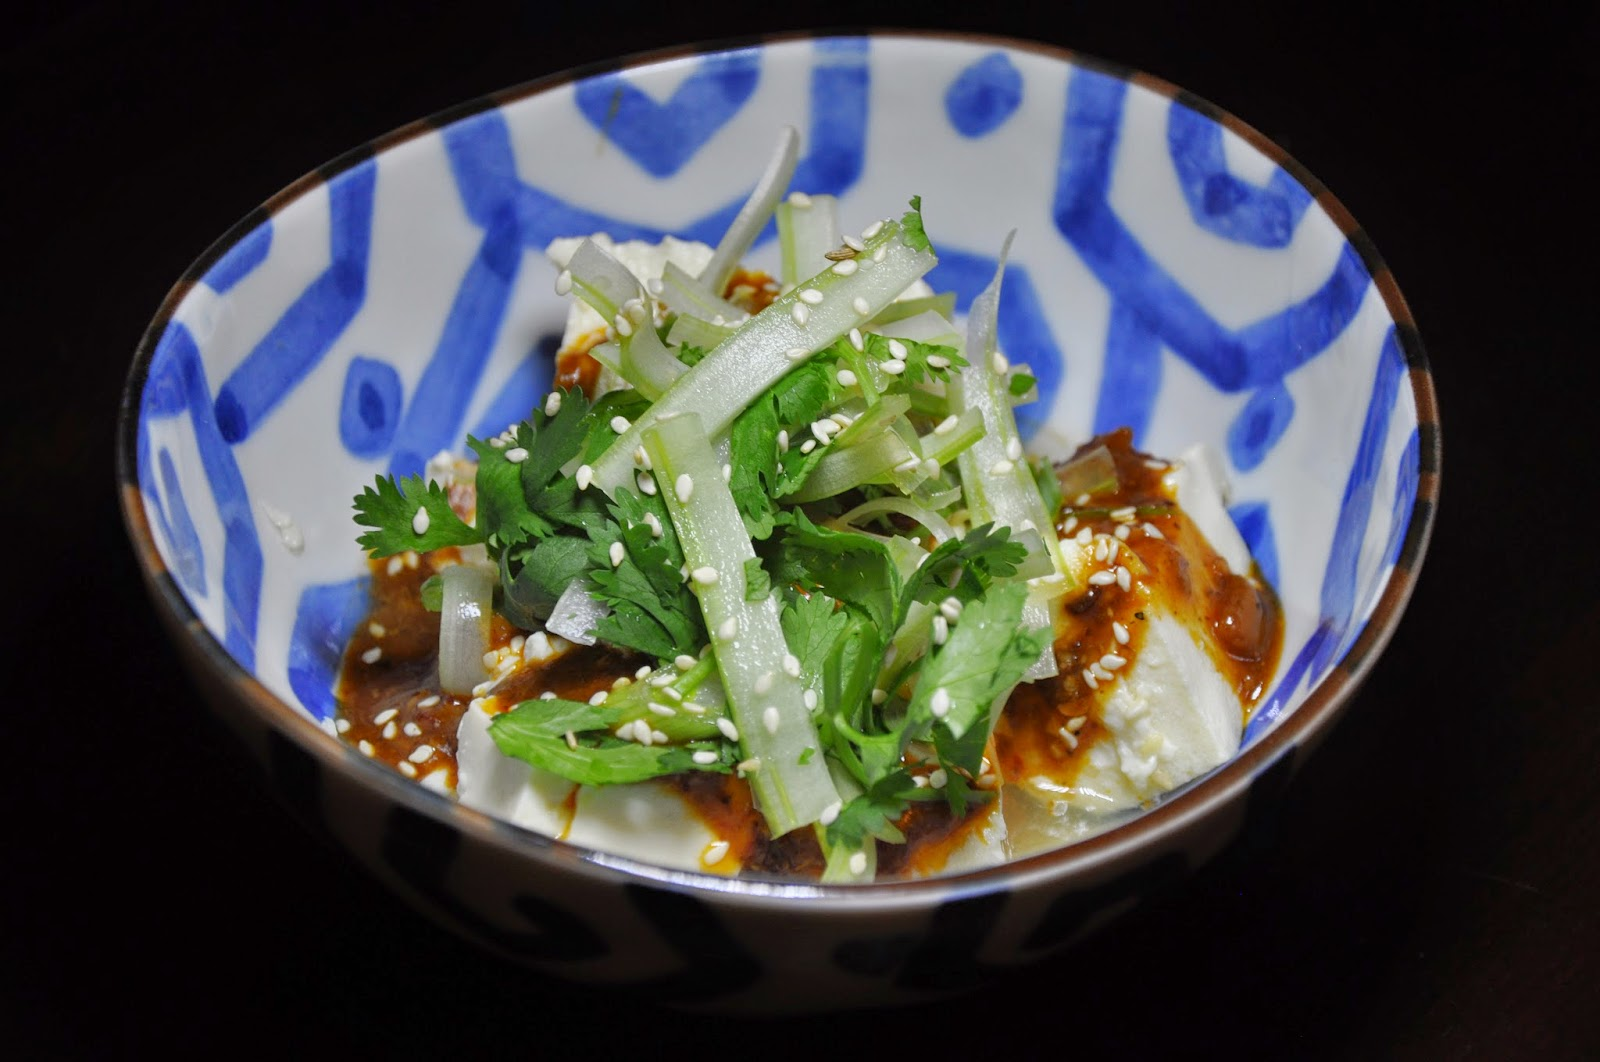 ... Year Meal #4: Spicy Warm Silken Tofu with Celery and Cilantro Salad